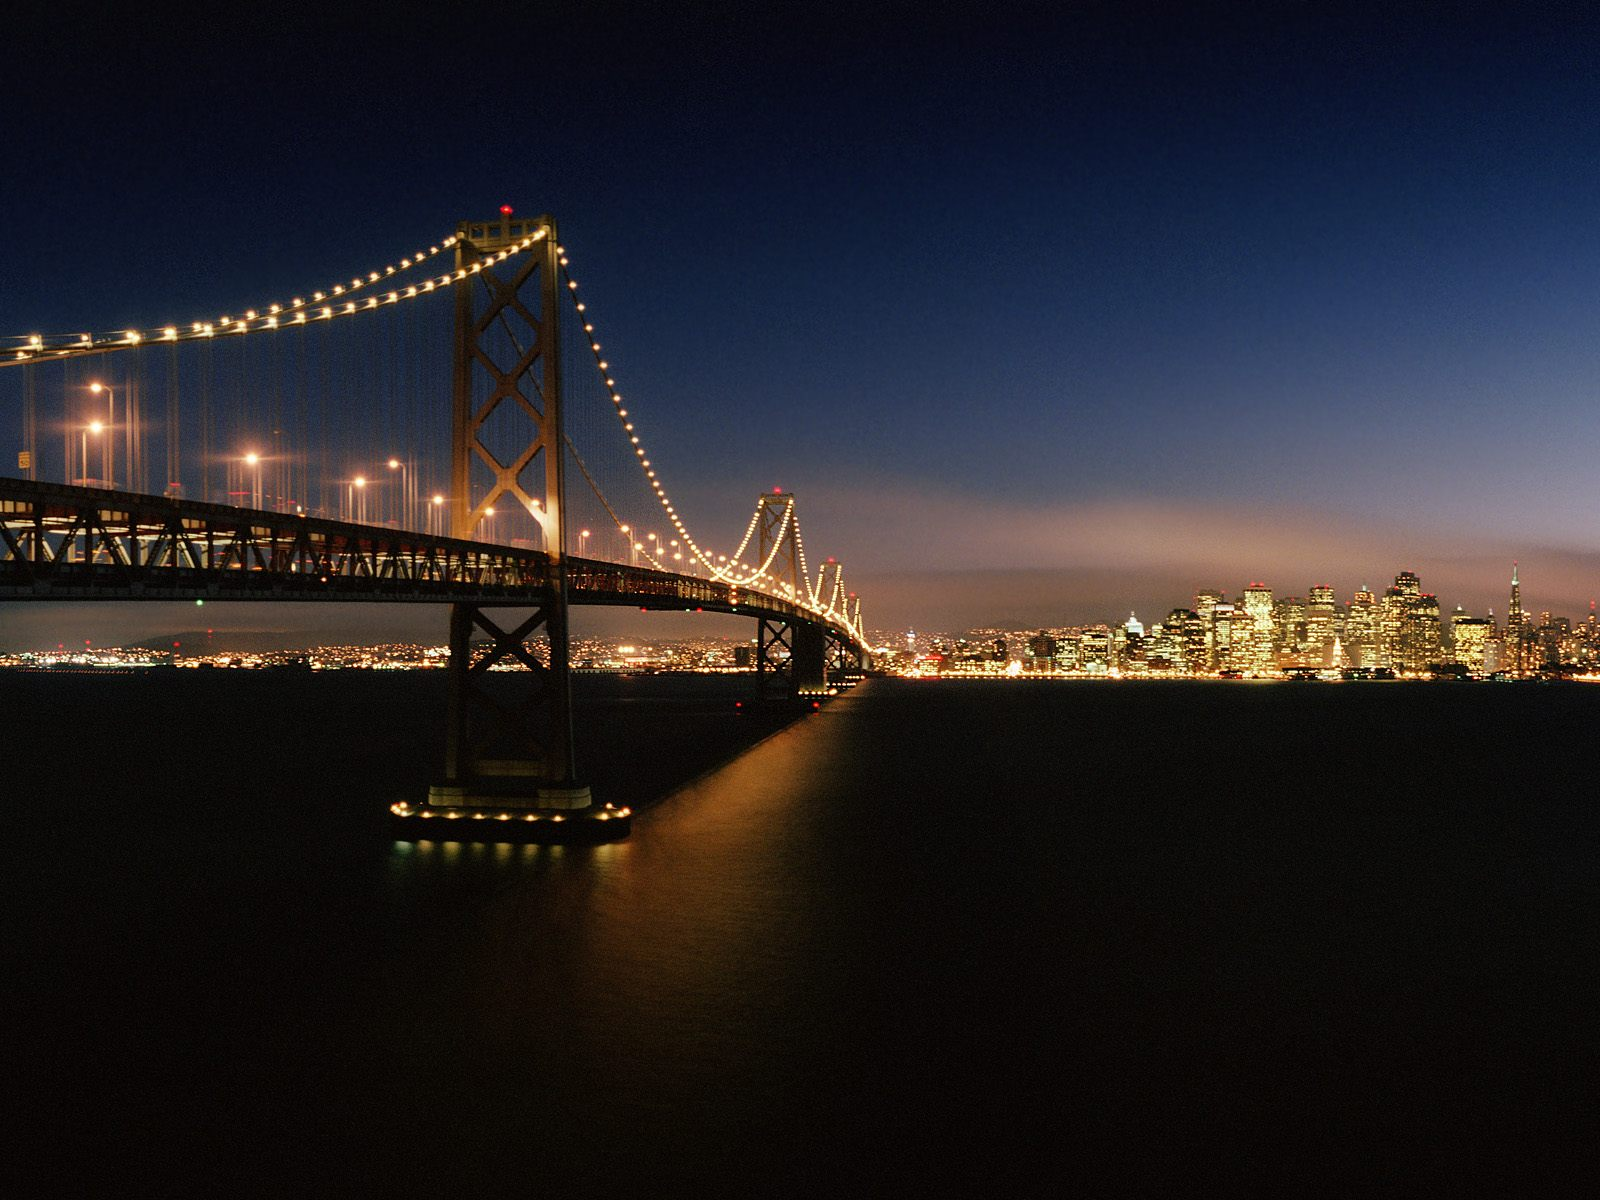 Evening Crossing Bay Bridge San Francisco California